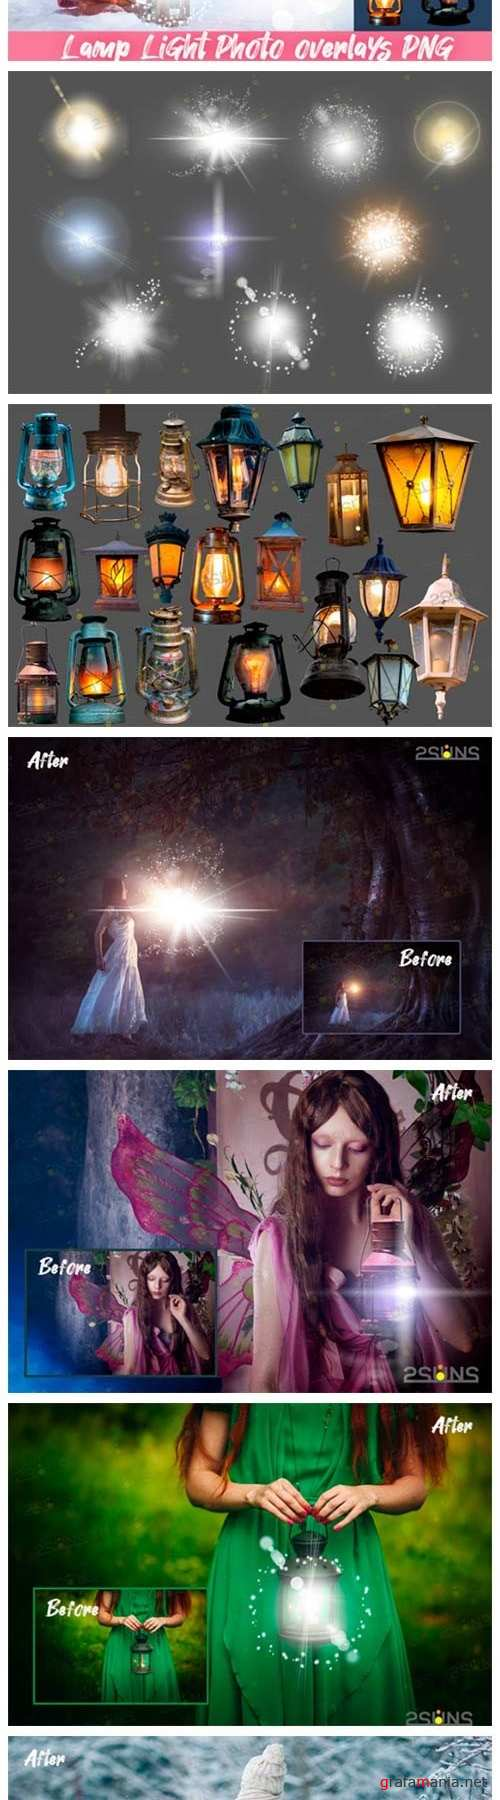 Photo overlays Photoshop lamp light clipart png lantern - 411105